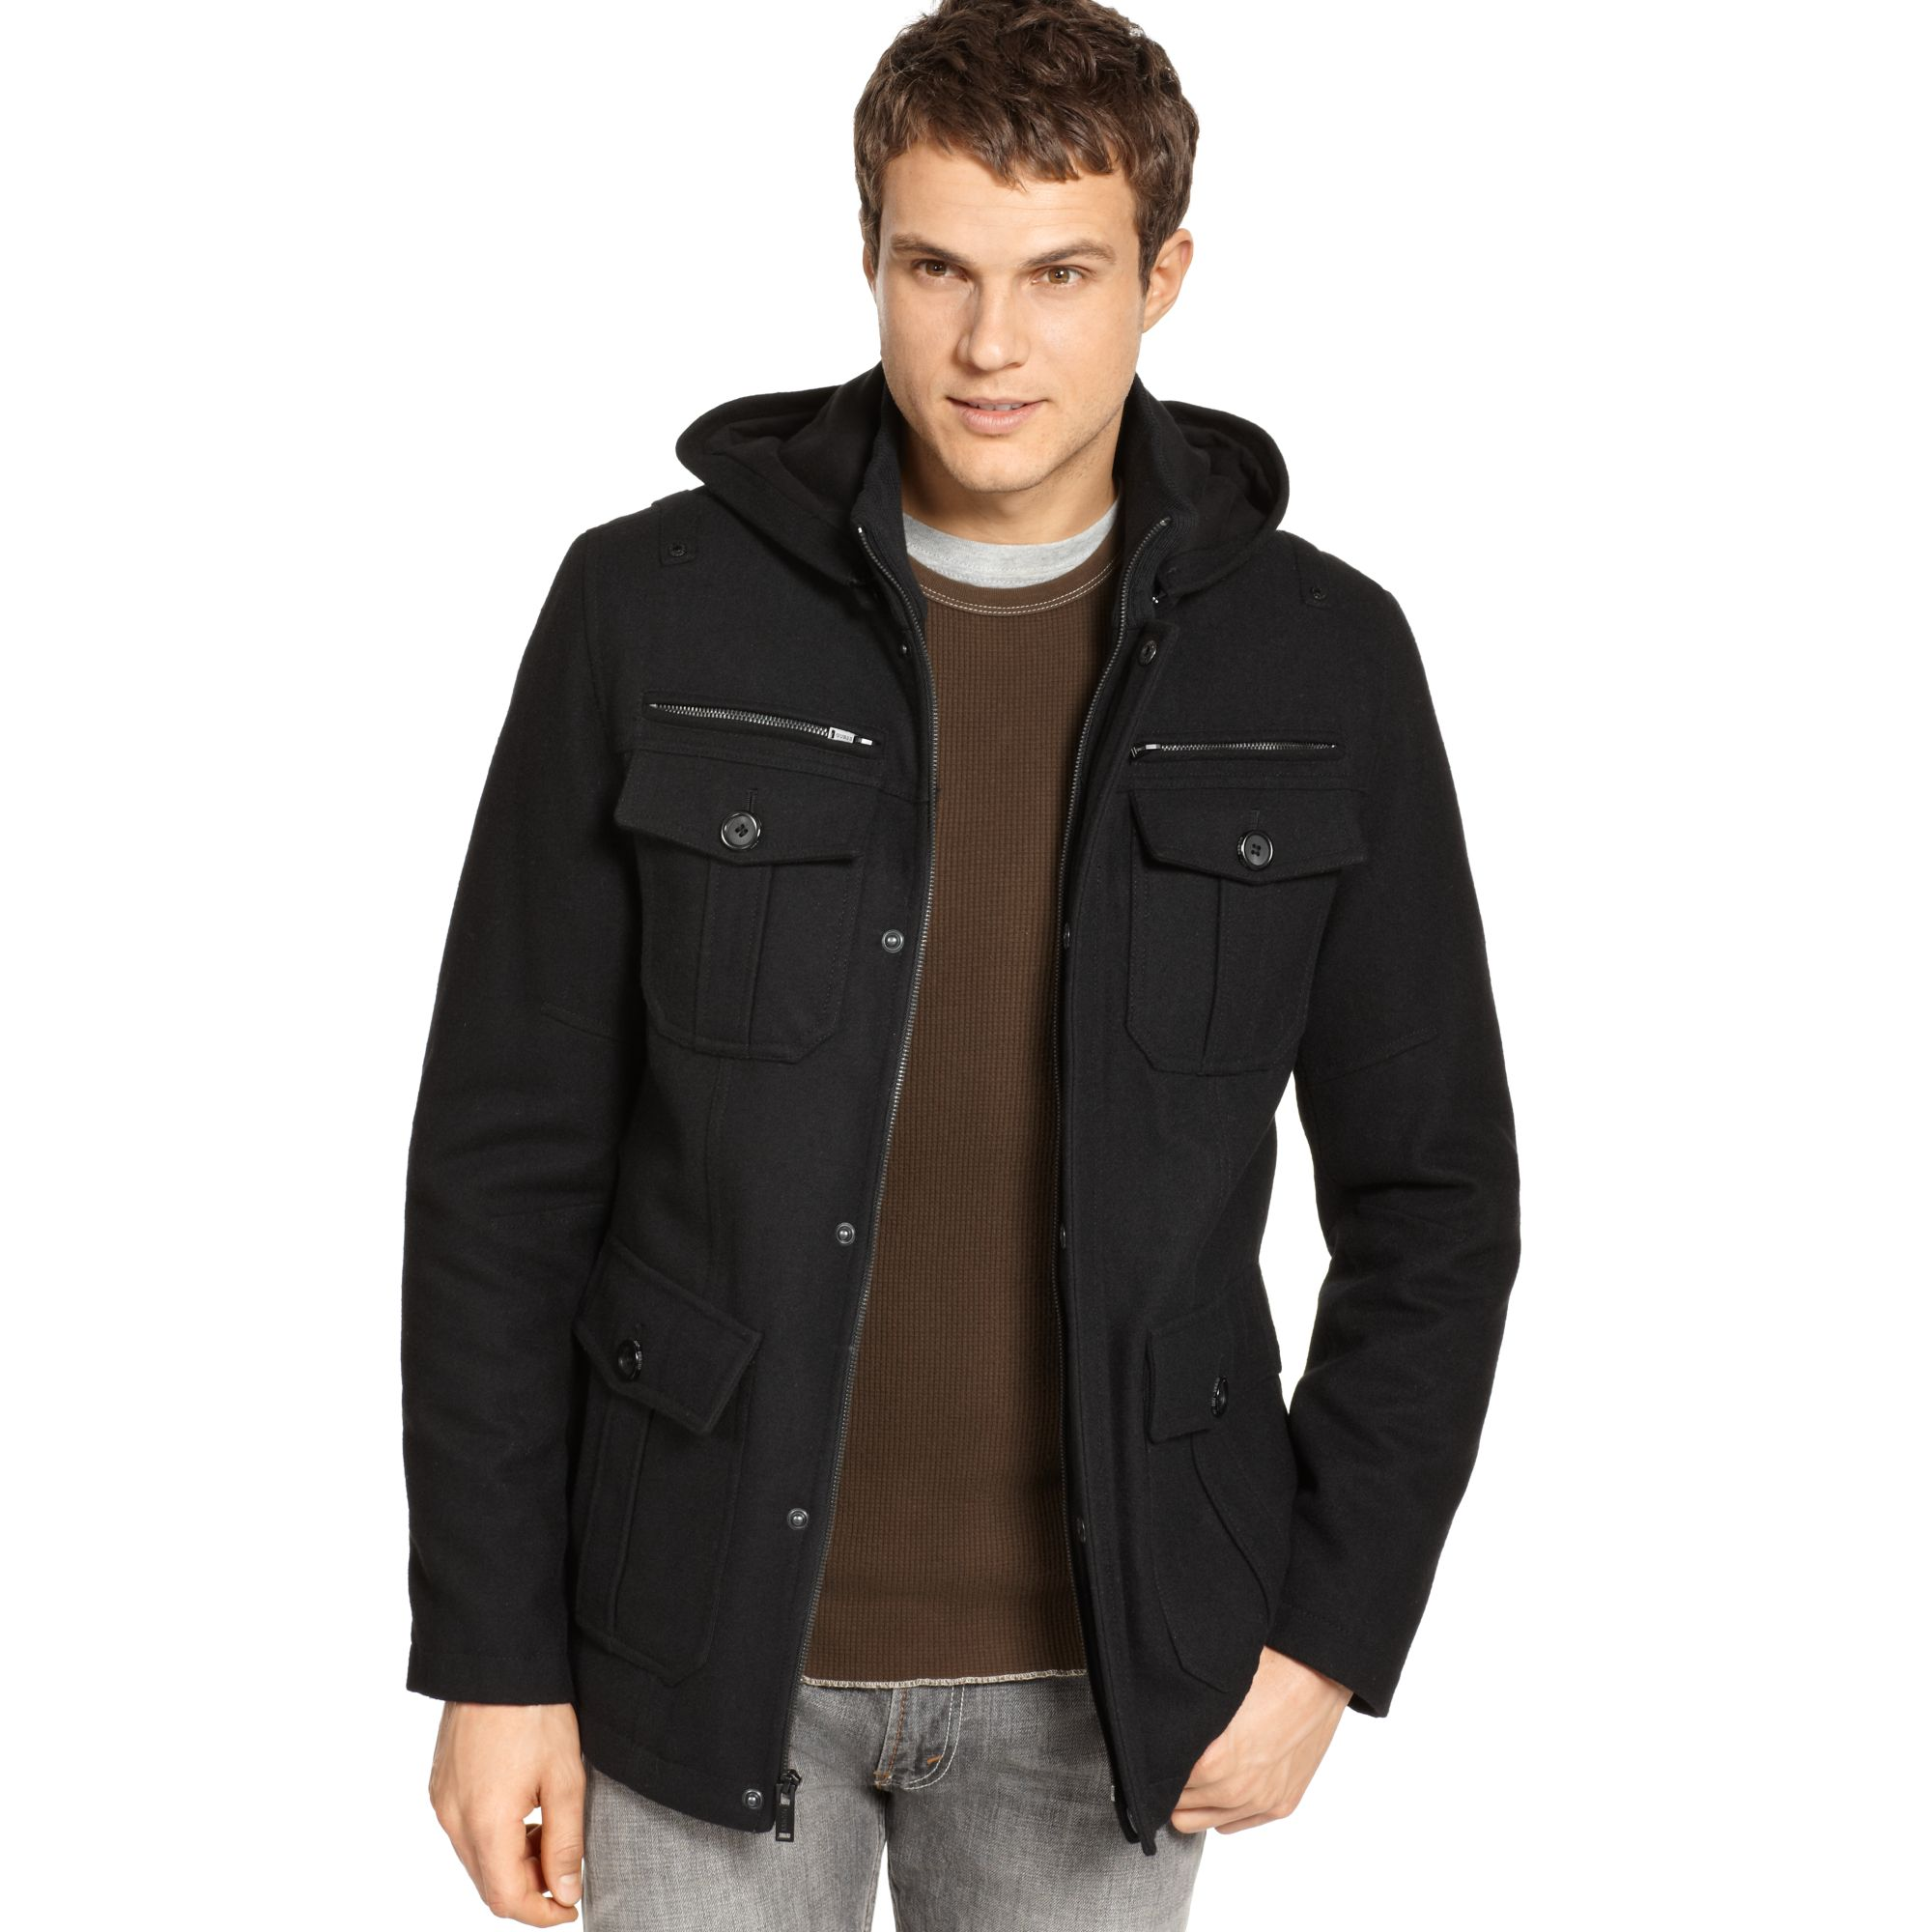 Mens Pea Coat With Hood Photo Album - Reikian